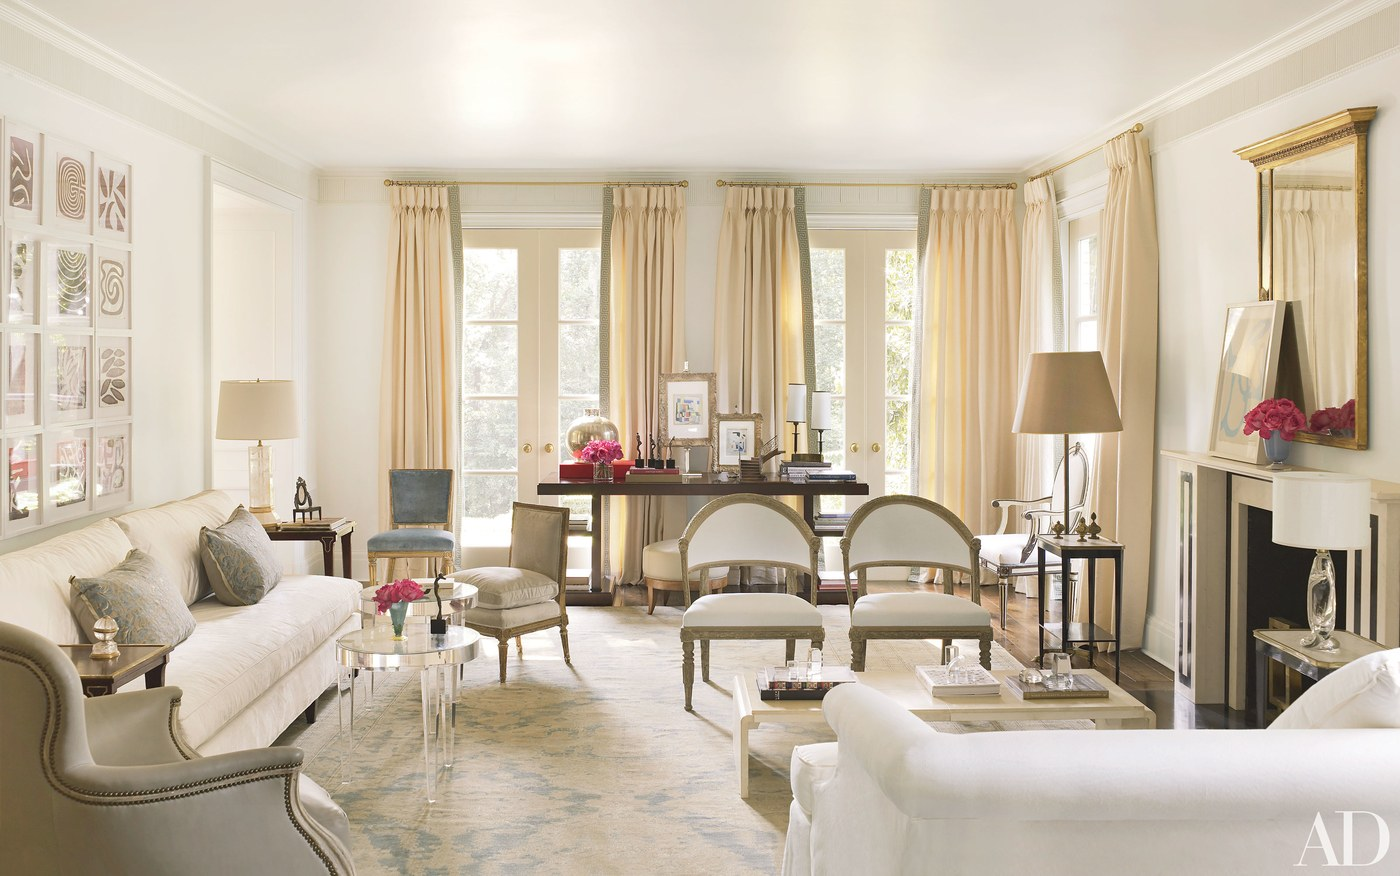 9 Stunning Decorating Ideas By Suzanne Kasler Interiors To Inspire You  9 Stunning Decorating Ideas By Suzanne Kasler Interiors To Inspire You 9 Stunning Decorating Ideas By Suzanne Kasler Interiors To Inspire You 1